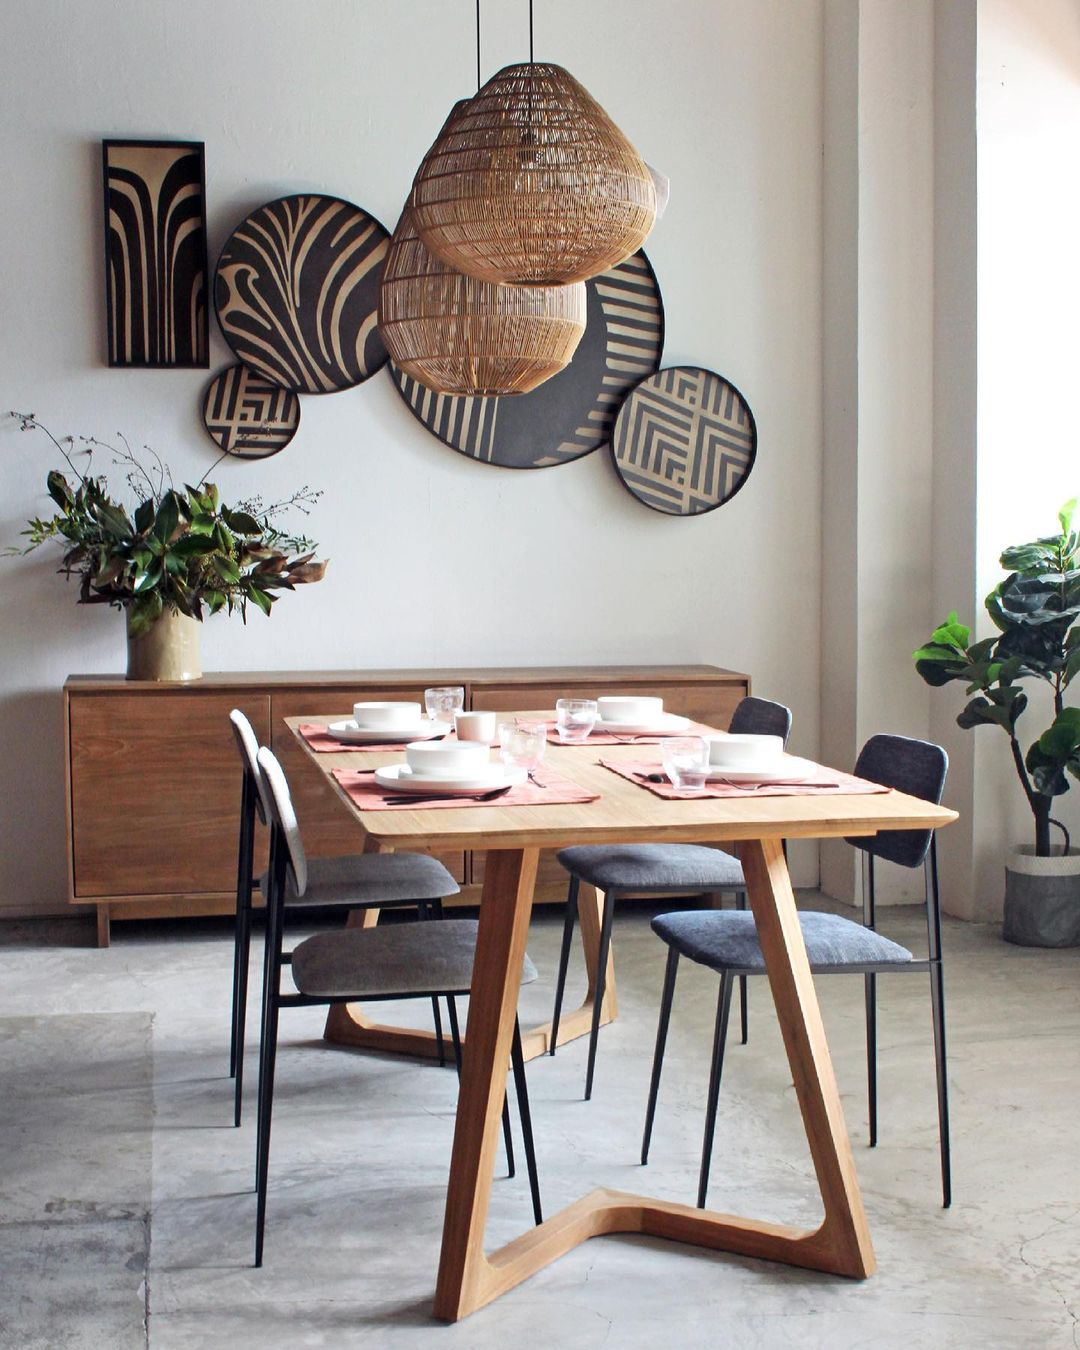 Where to buy furniture online in Singapore - Soul & Tables